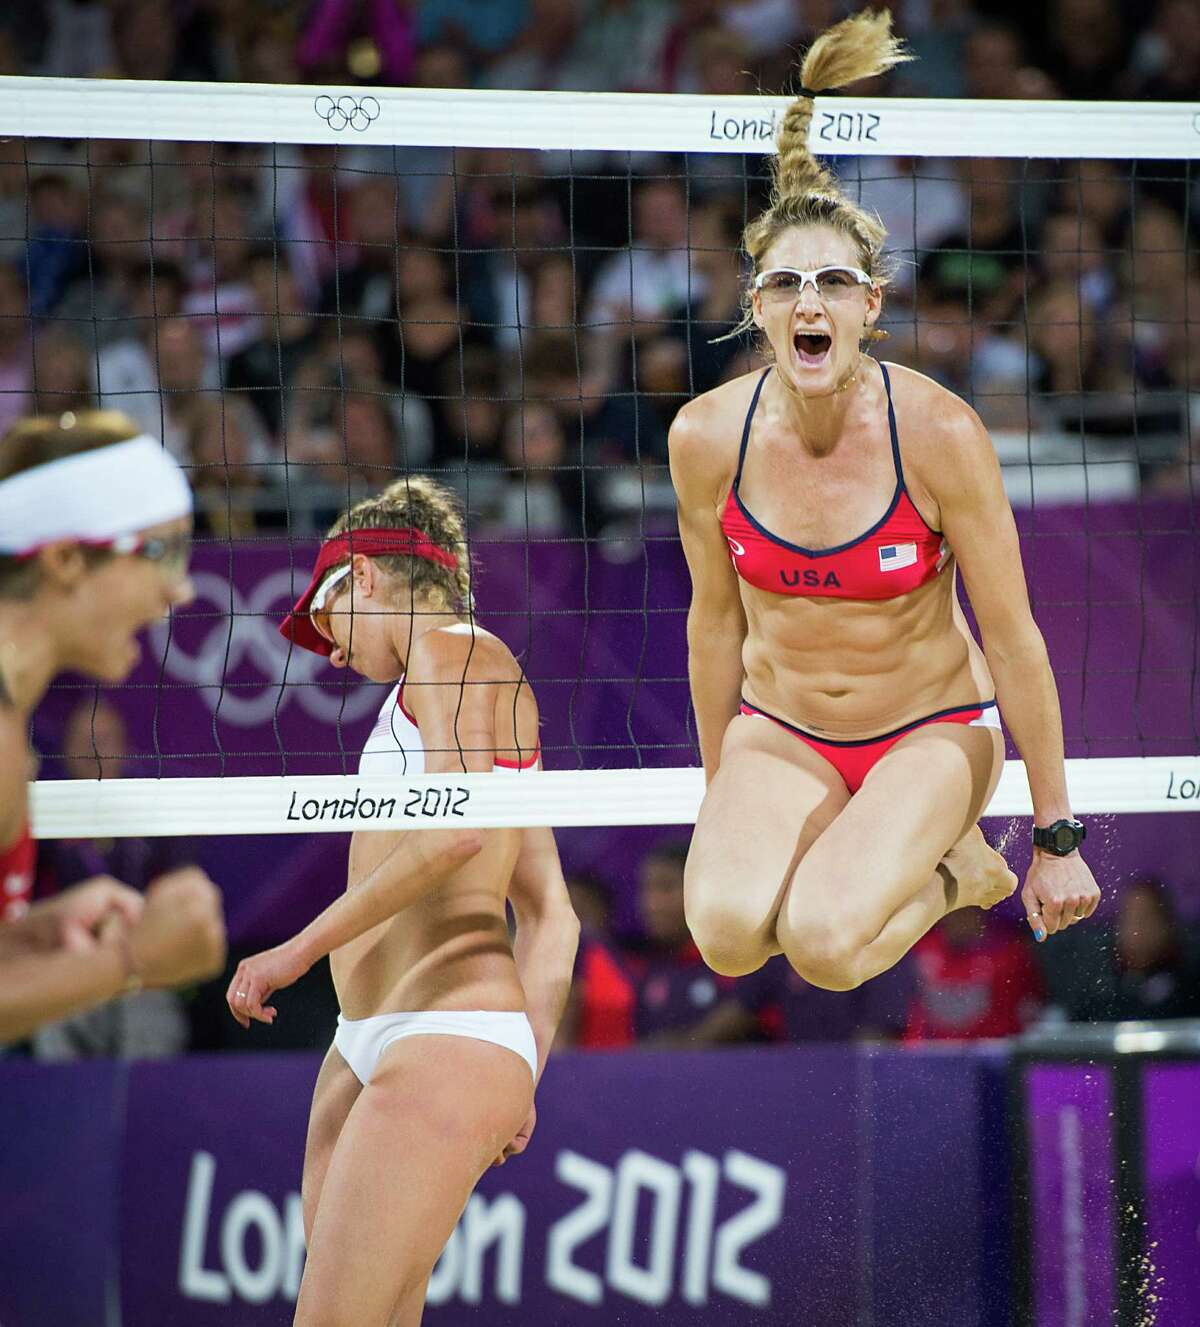 Kerri Walsh Jennings leaps in celebration after reaching match point with her partner Misty May-Treanor, left, on their way to defeating Jennifer Kessy and April Ross in the women's beach volleyball gold medal match at the 2012 London Olympics on Wednesday, Aug. 8, 2012.( Smiley N. Pool / Houston Chronicle )